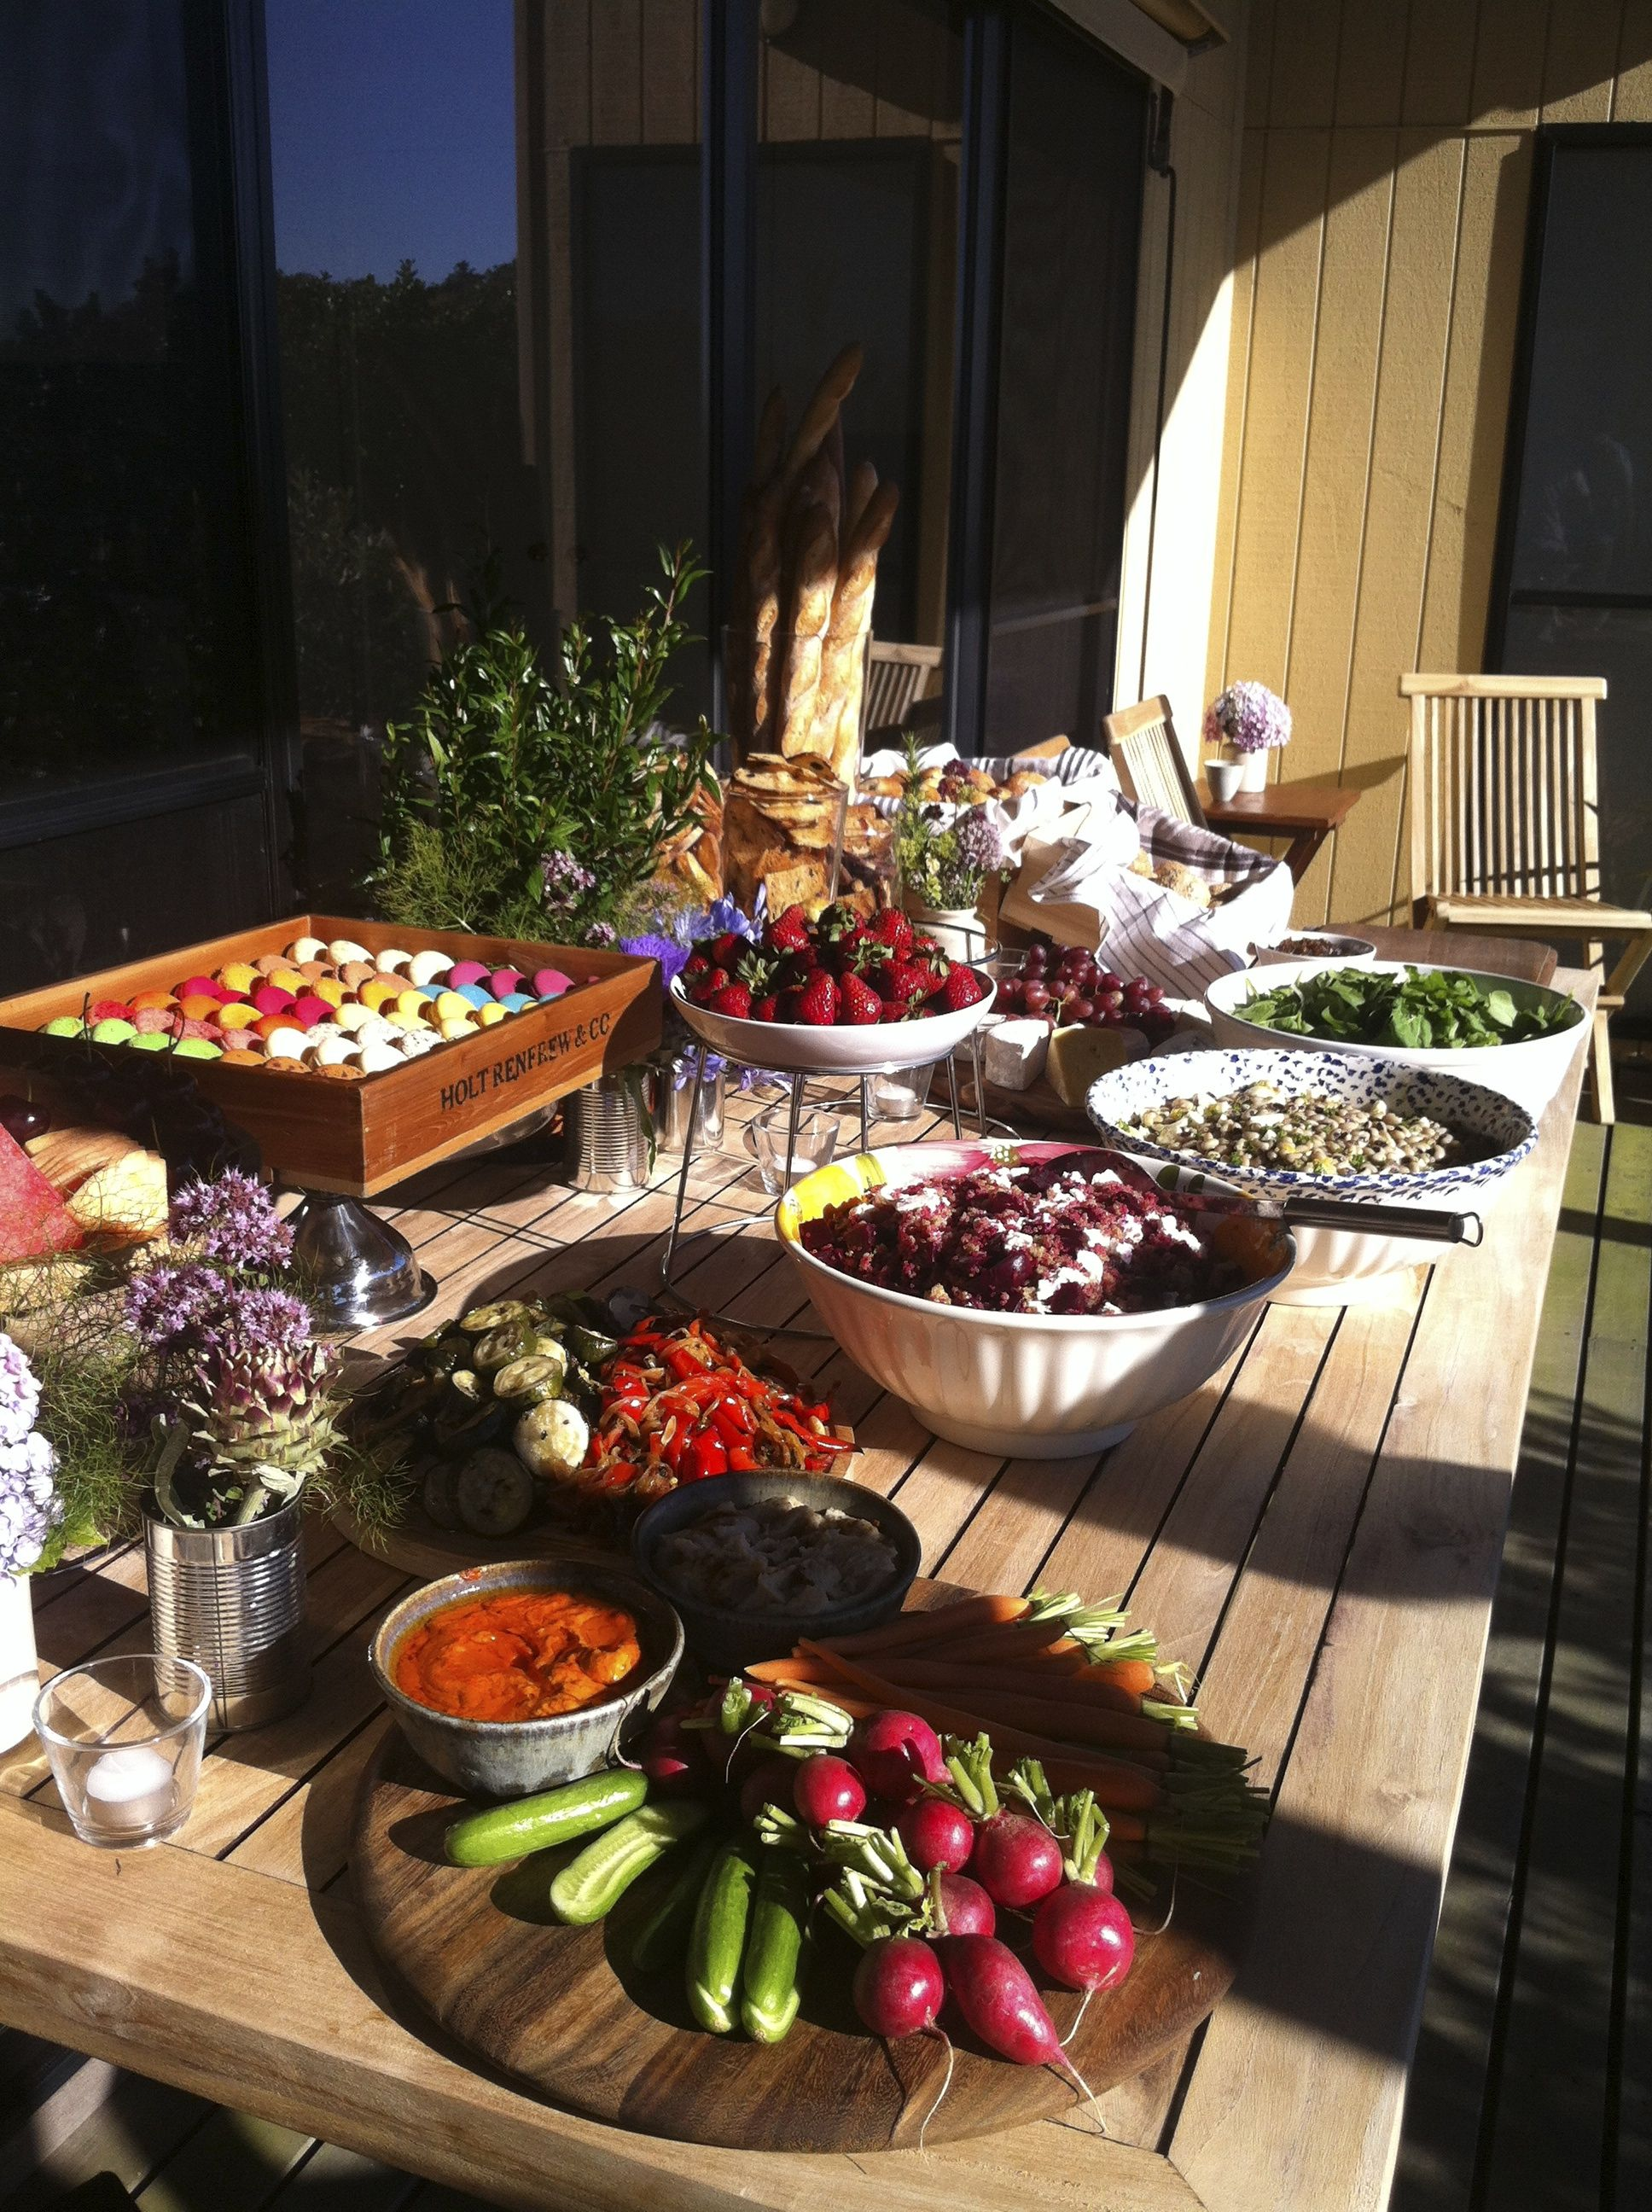 Pin By Creative Hunger On Creative Hunger Garden Party Recipes Party Food Images Backyard Party Food